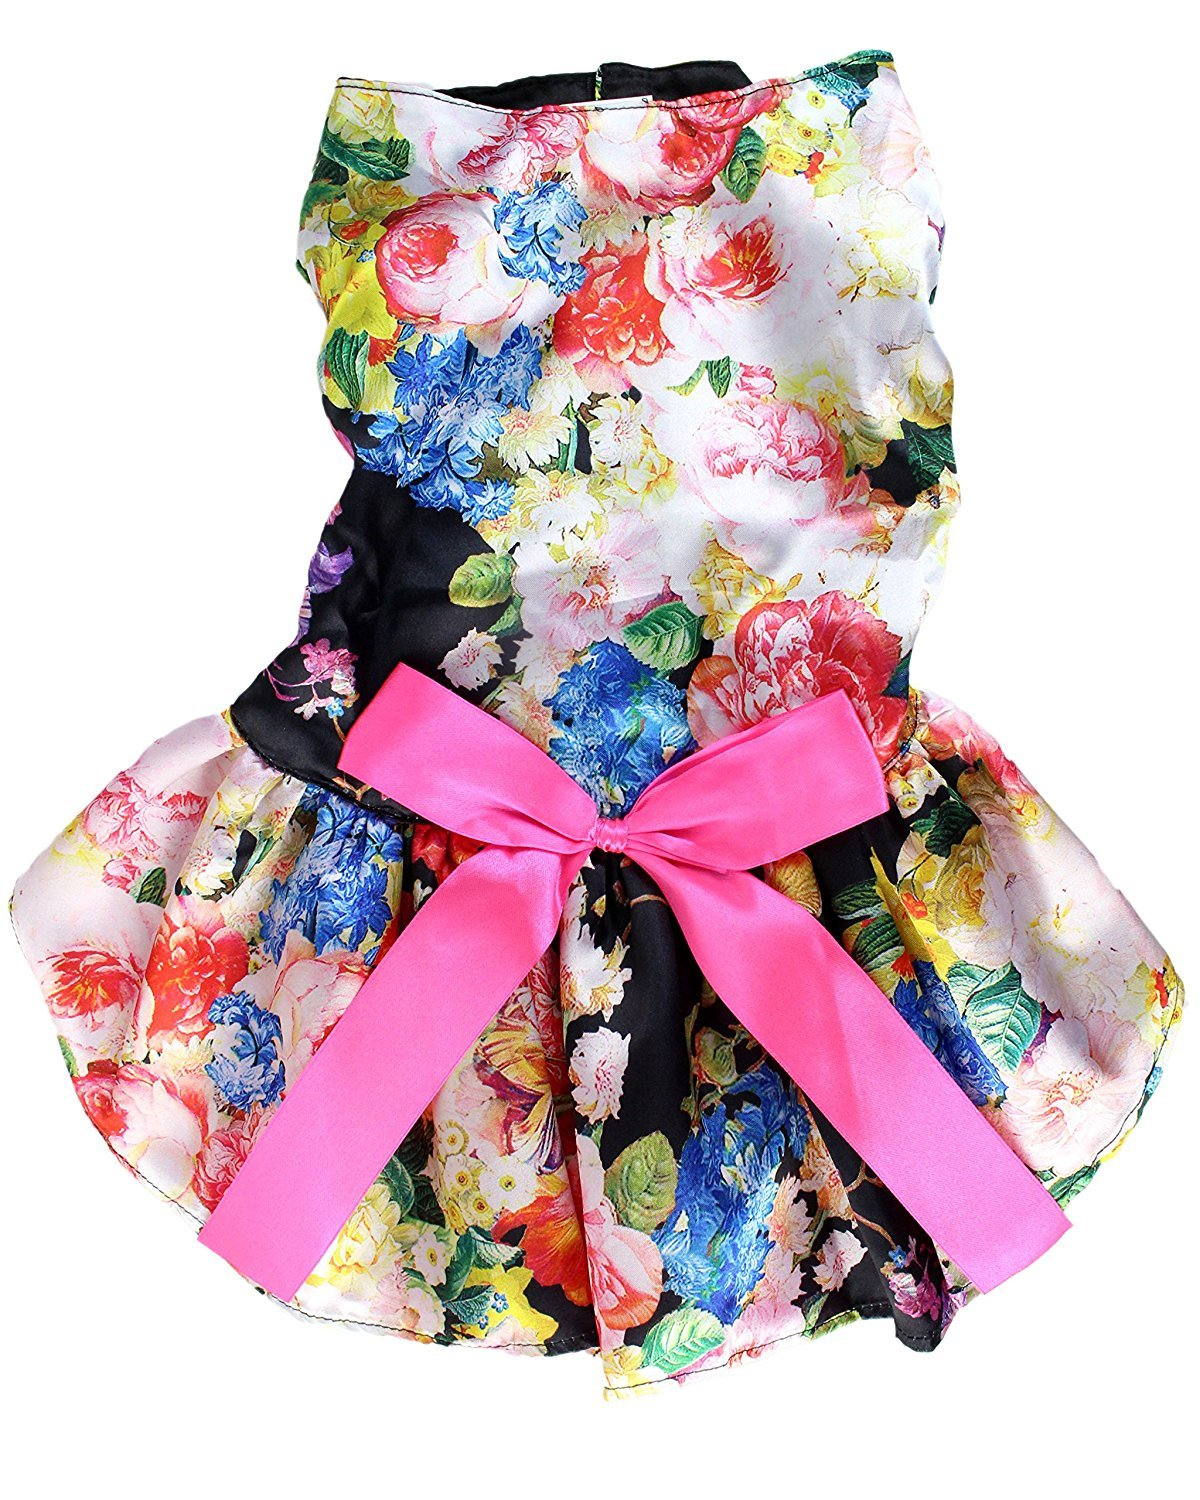 Floral Satin Dog Dress by Midlee (Small Dog X-Large, Black)